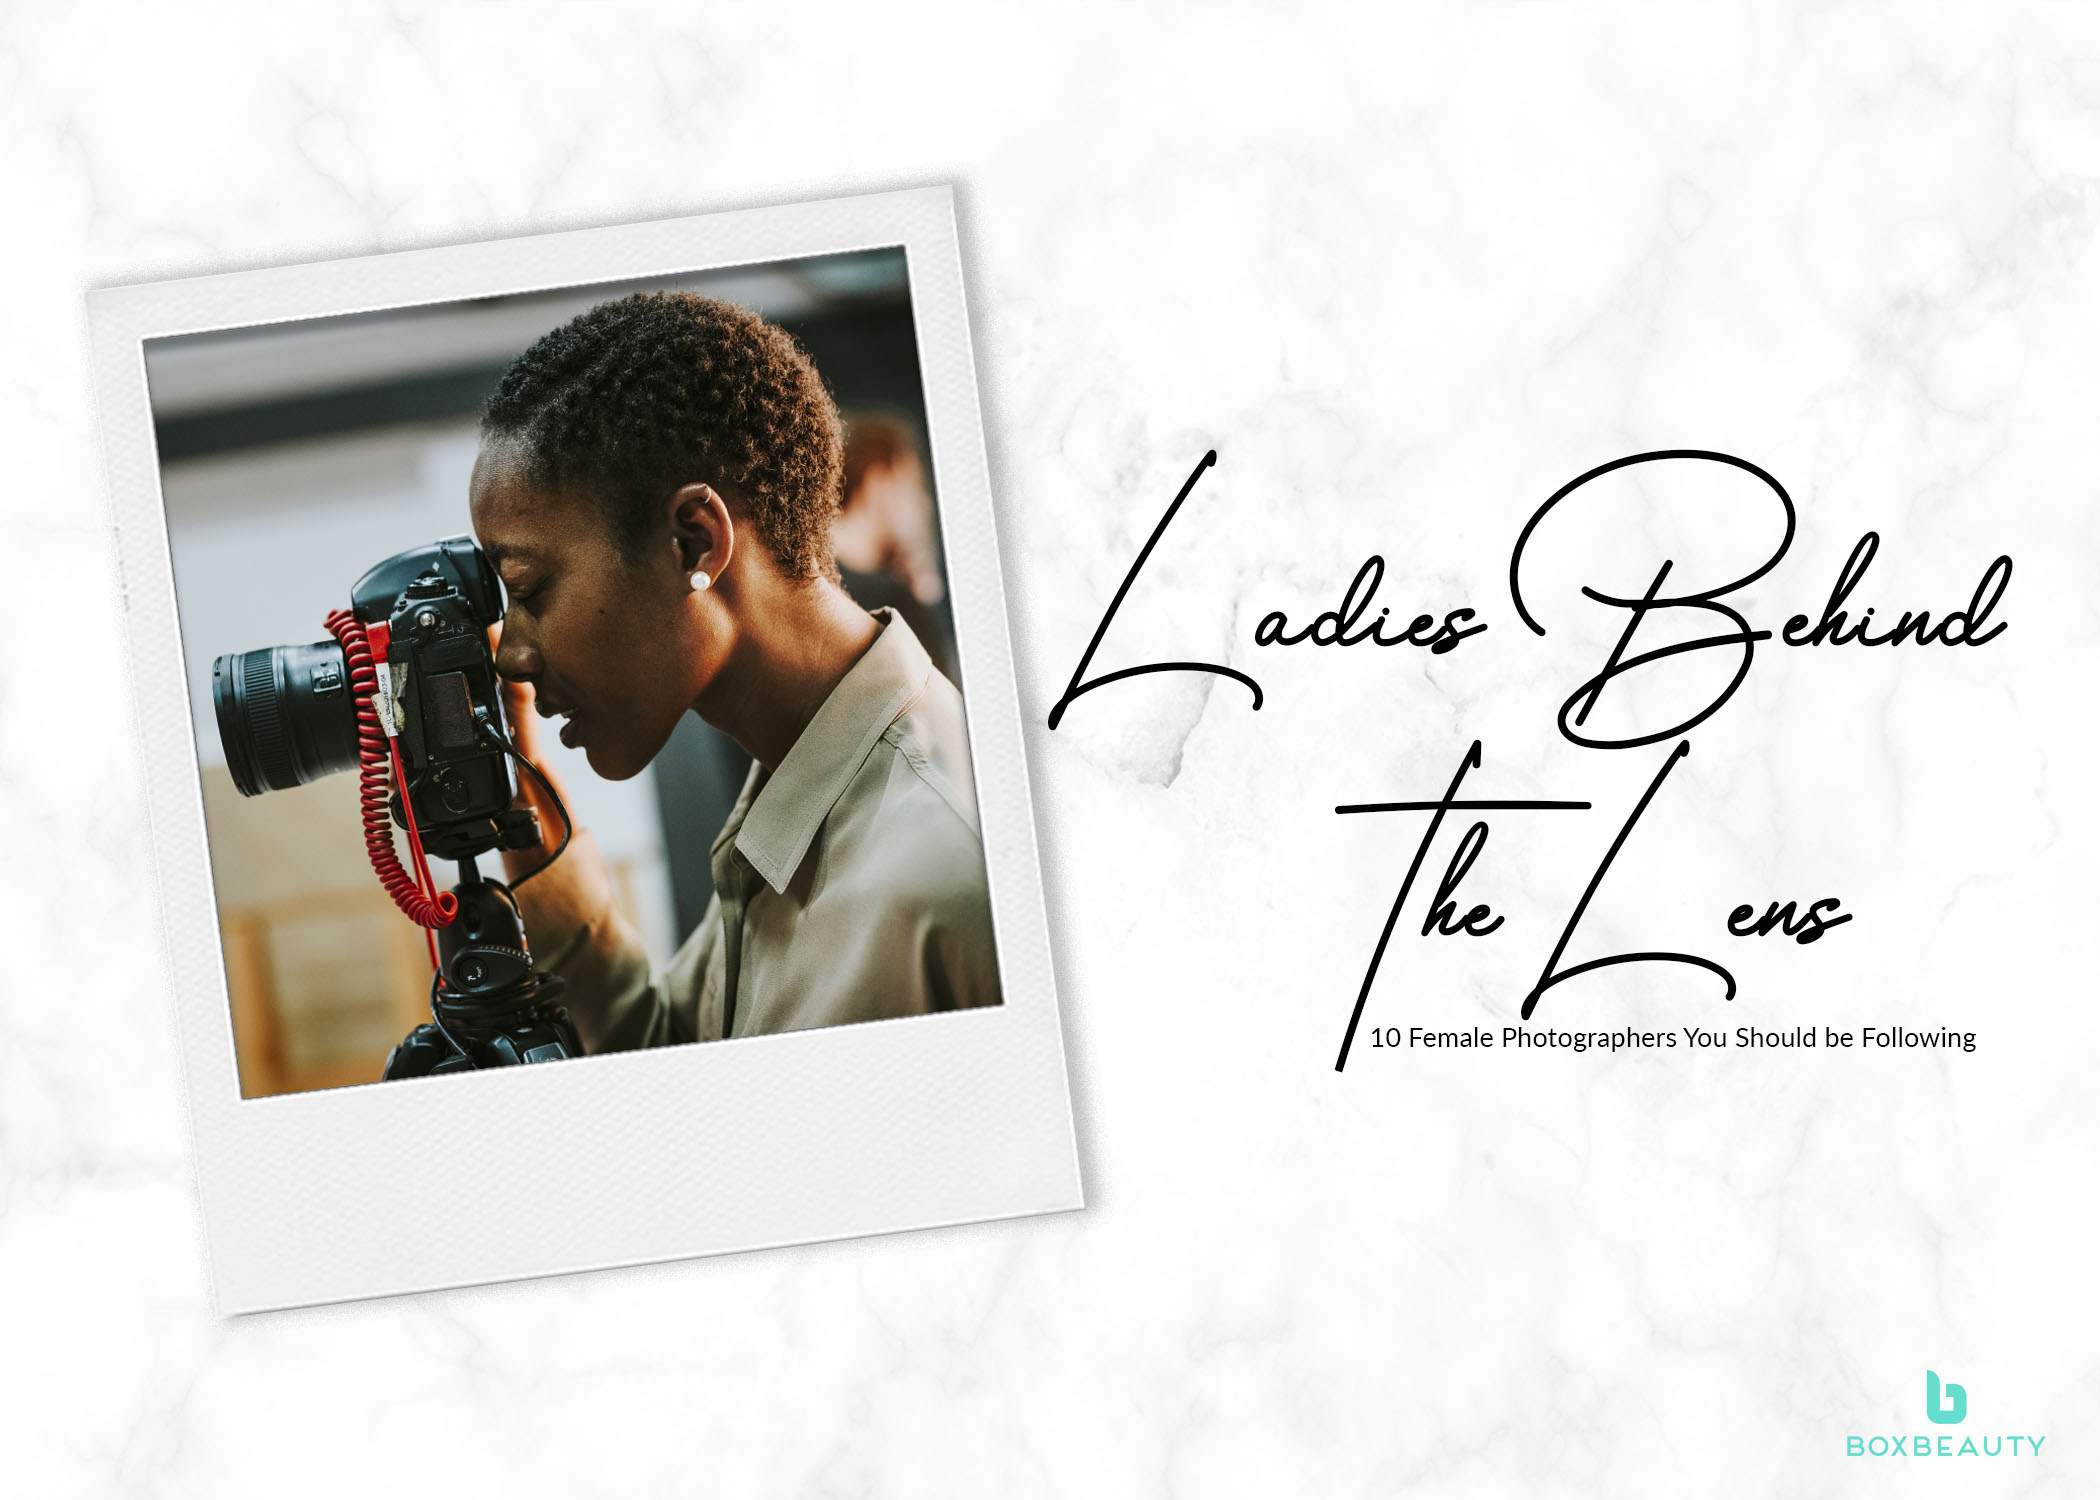 Ladies Behind the Lens: 10 Female Photographers You Should be Following